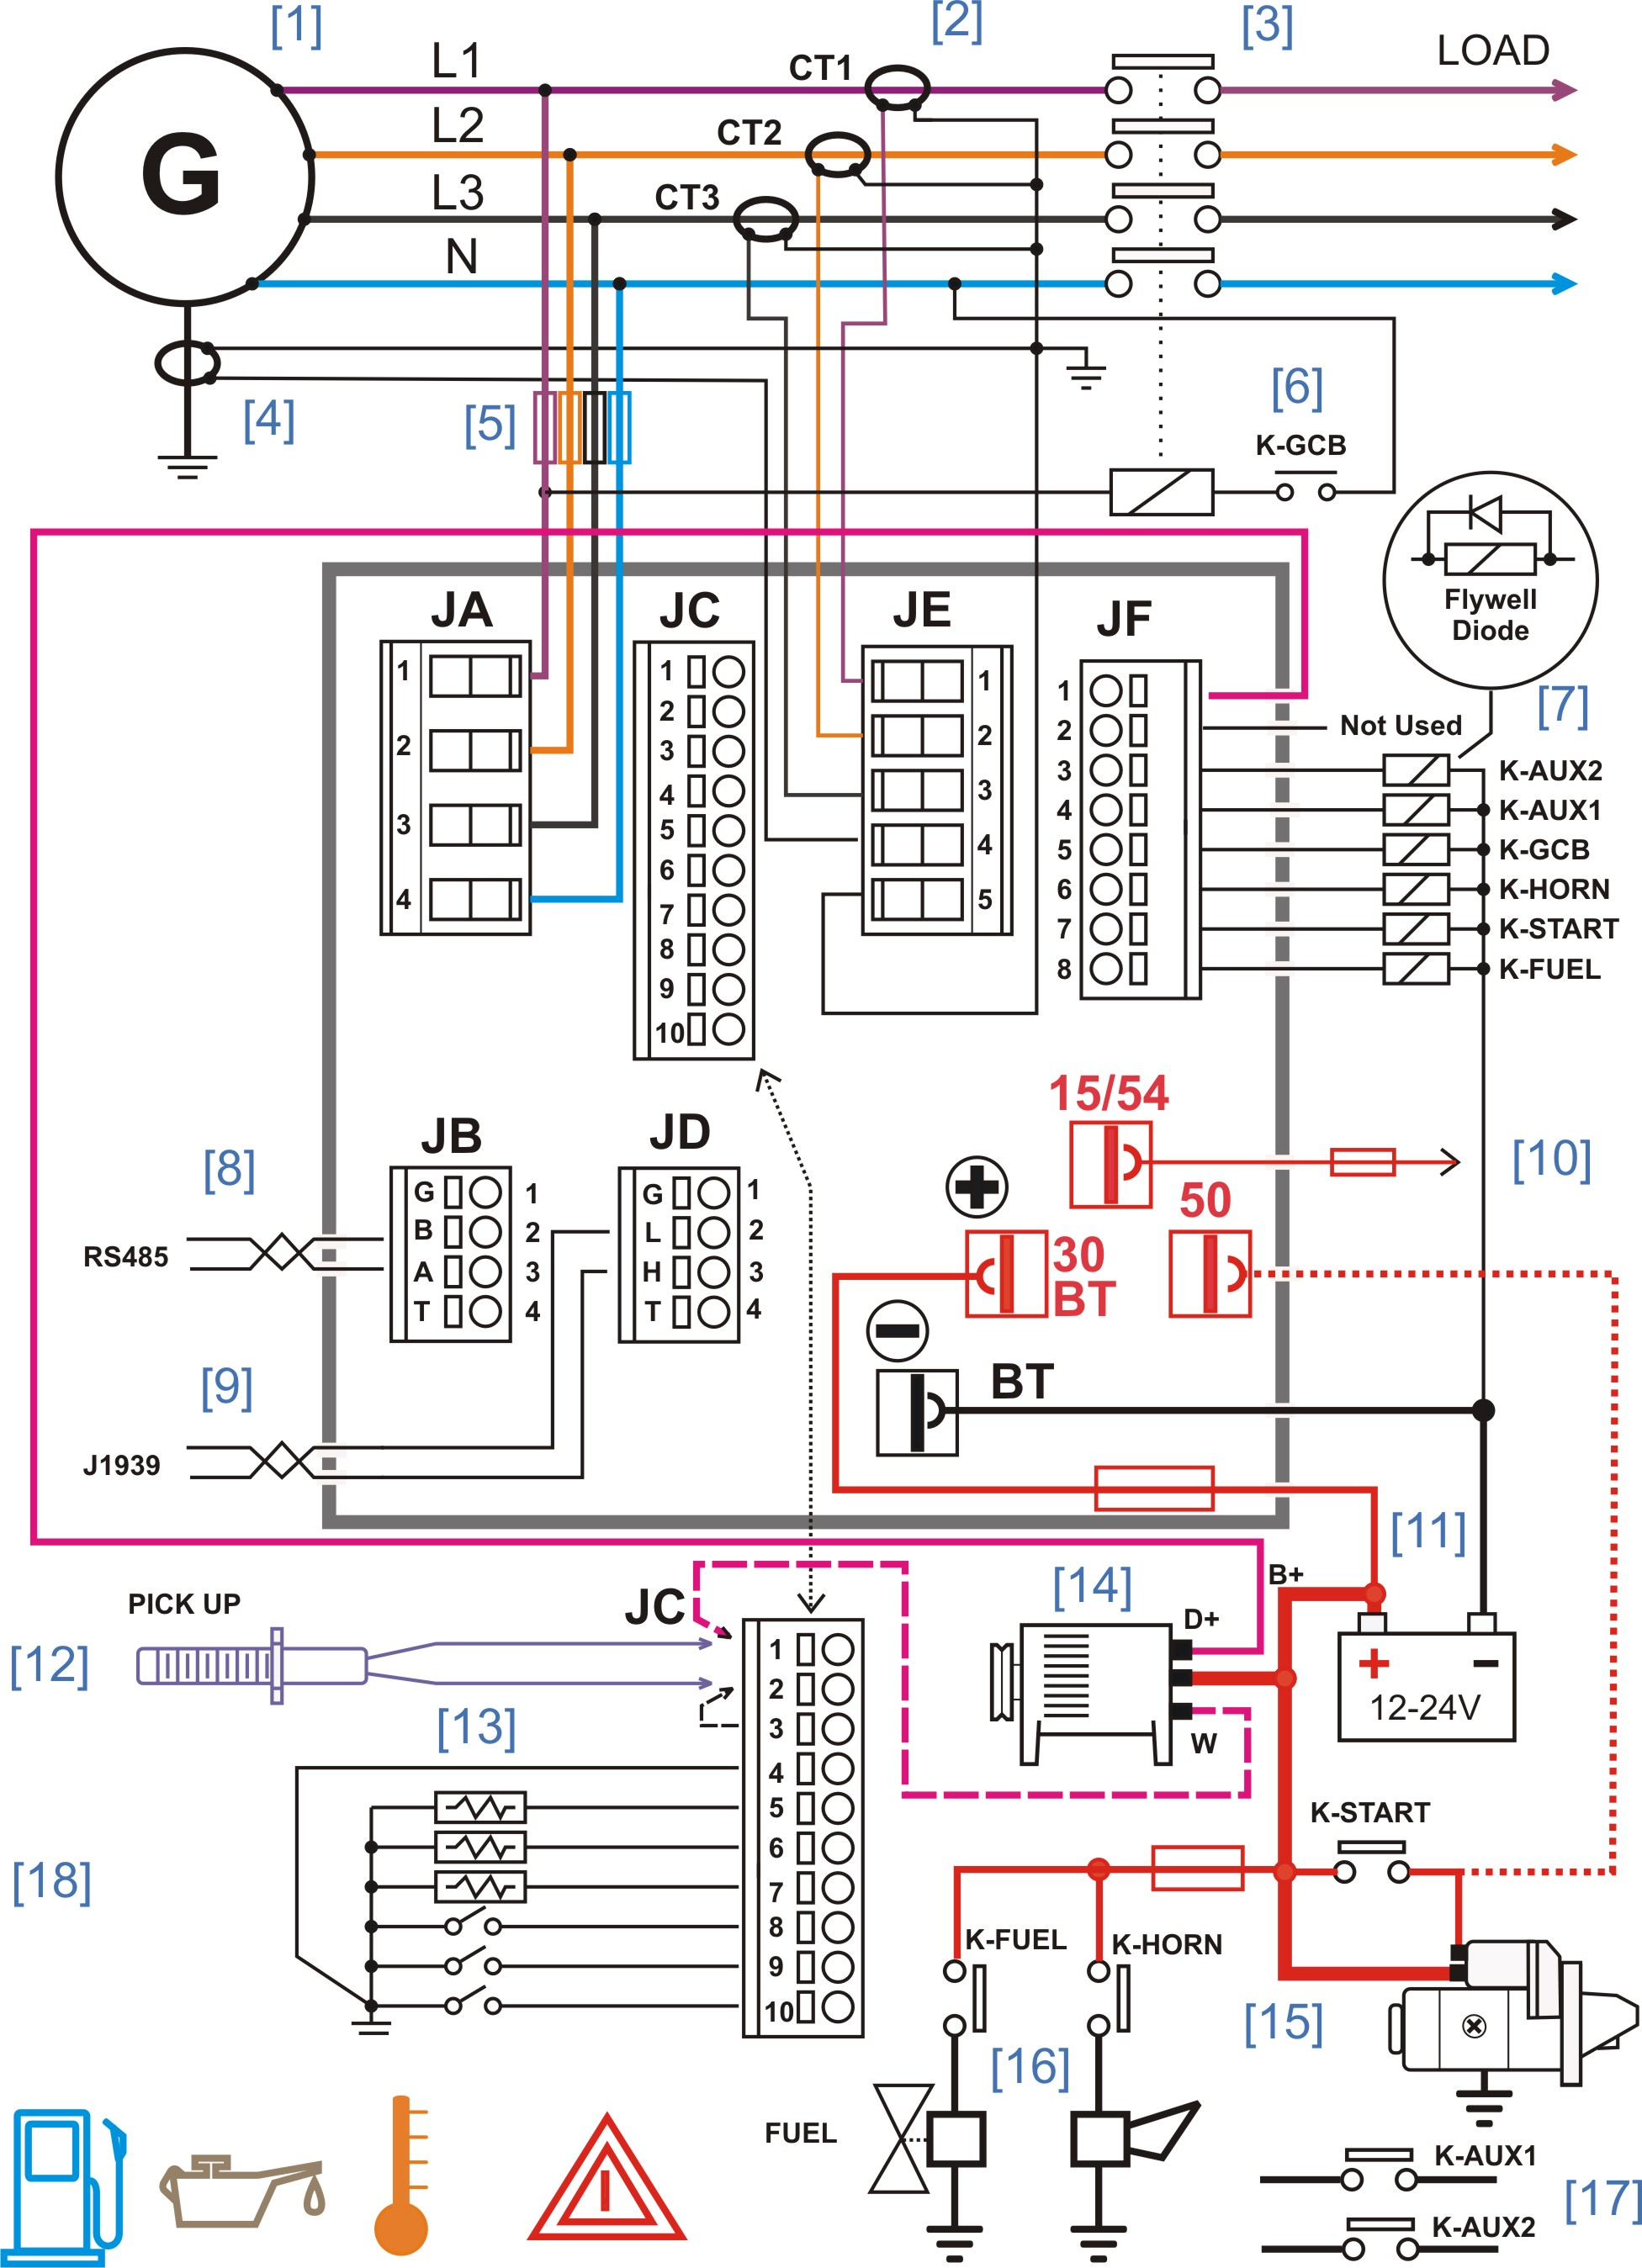 Diesel Generator Control Panel Wiring Diagram diesel generator control panel wiring diagram genset controller  at alyssarenee.co